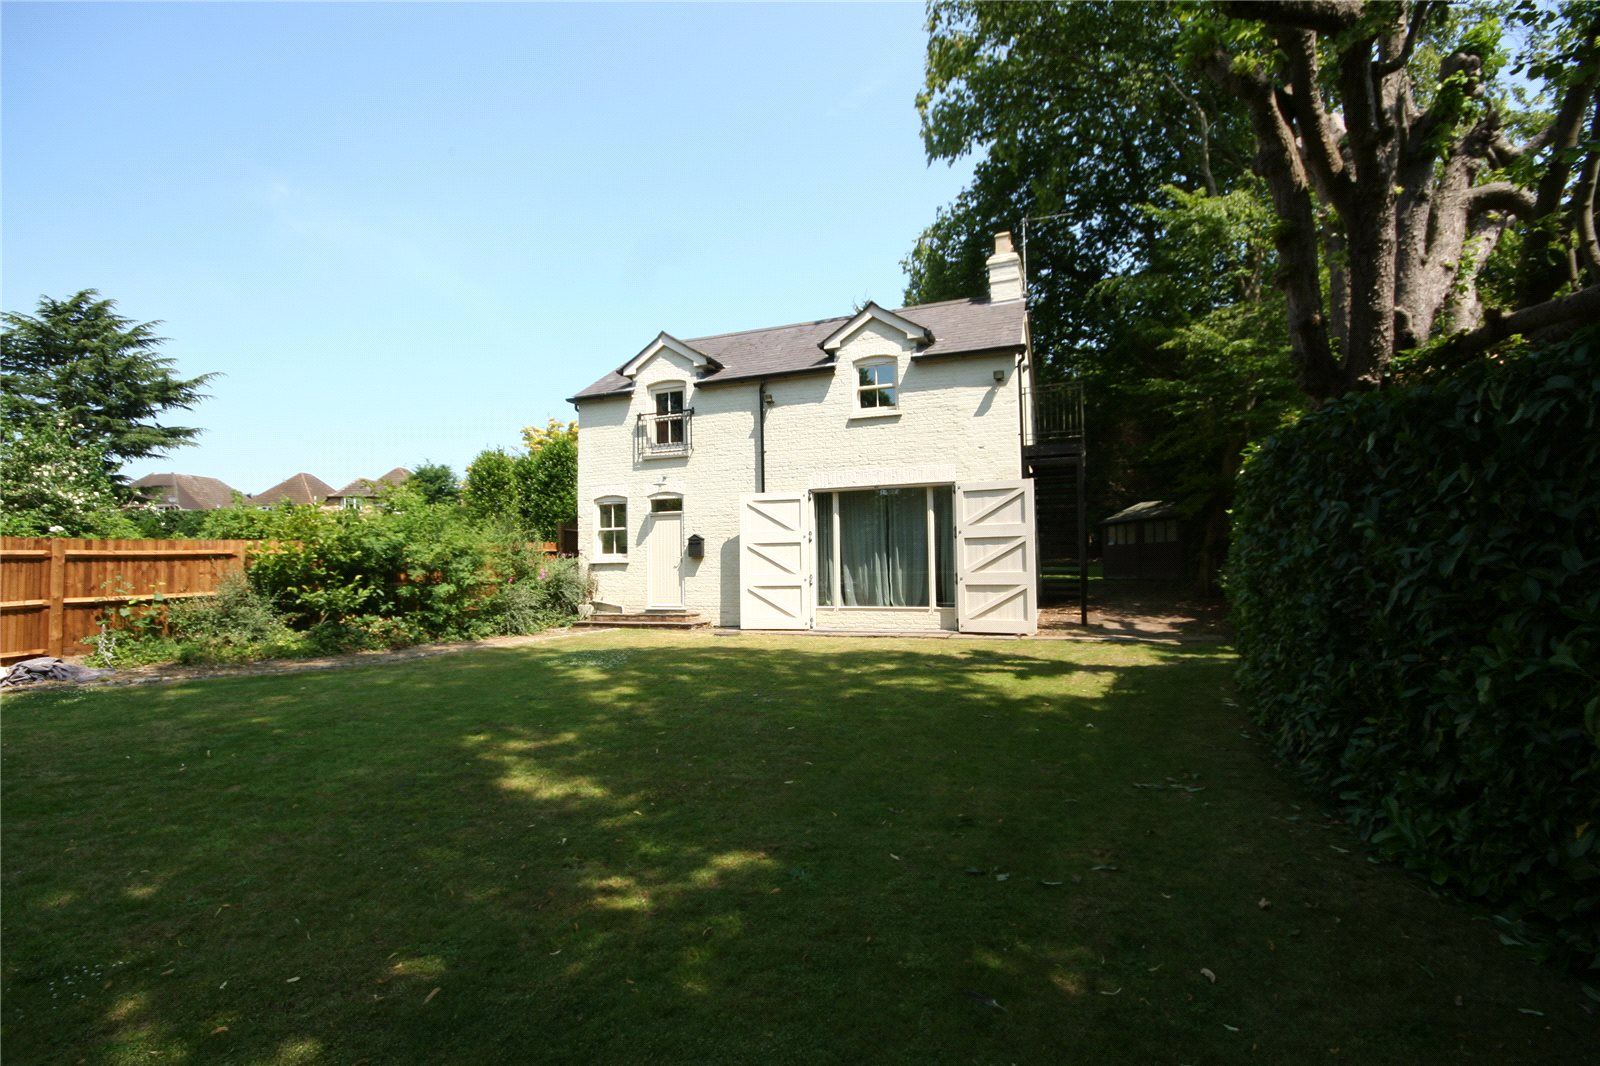 Additional photo for property listing at Rogers Lane, Stoke Poges, Buckinghamshire, SL2 Stoke Poges, Inglaterra